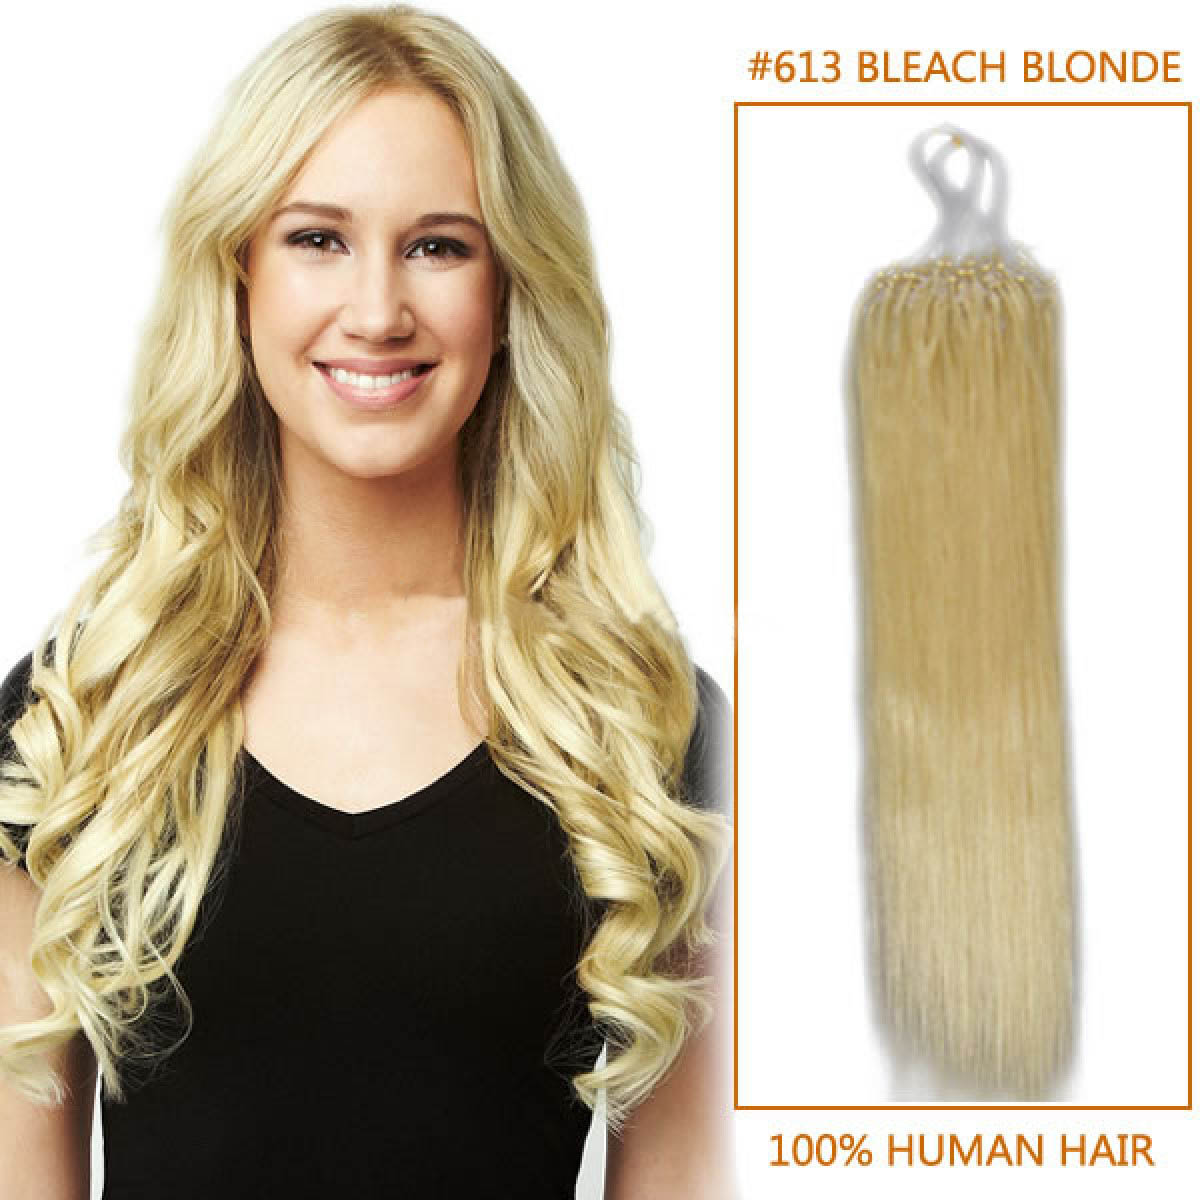 16 Inch 613 Bleach Blonde Micro Loop Human Hair Extensions 100s